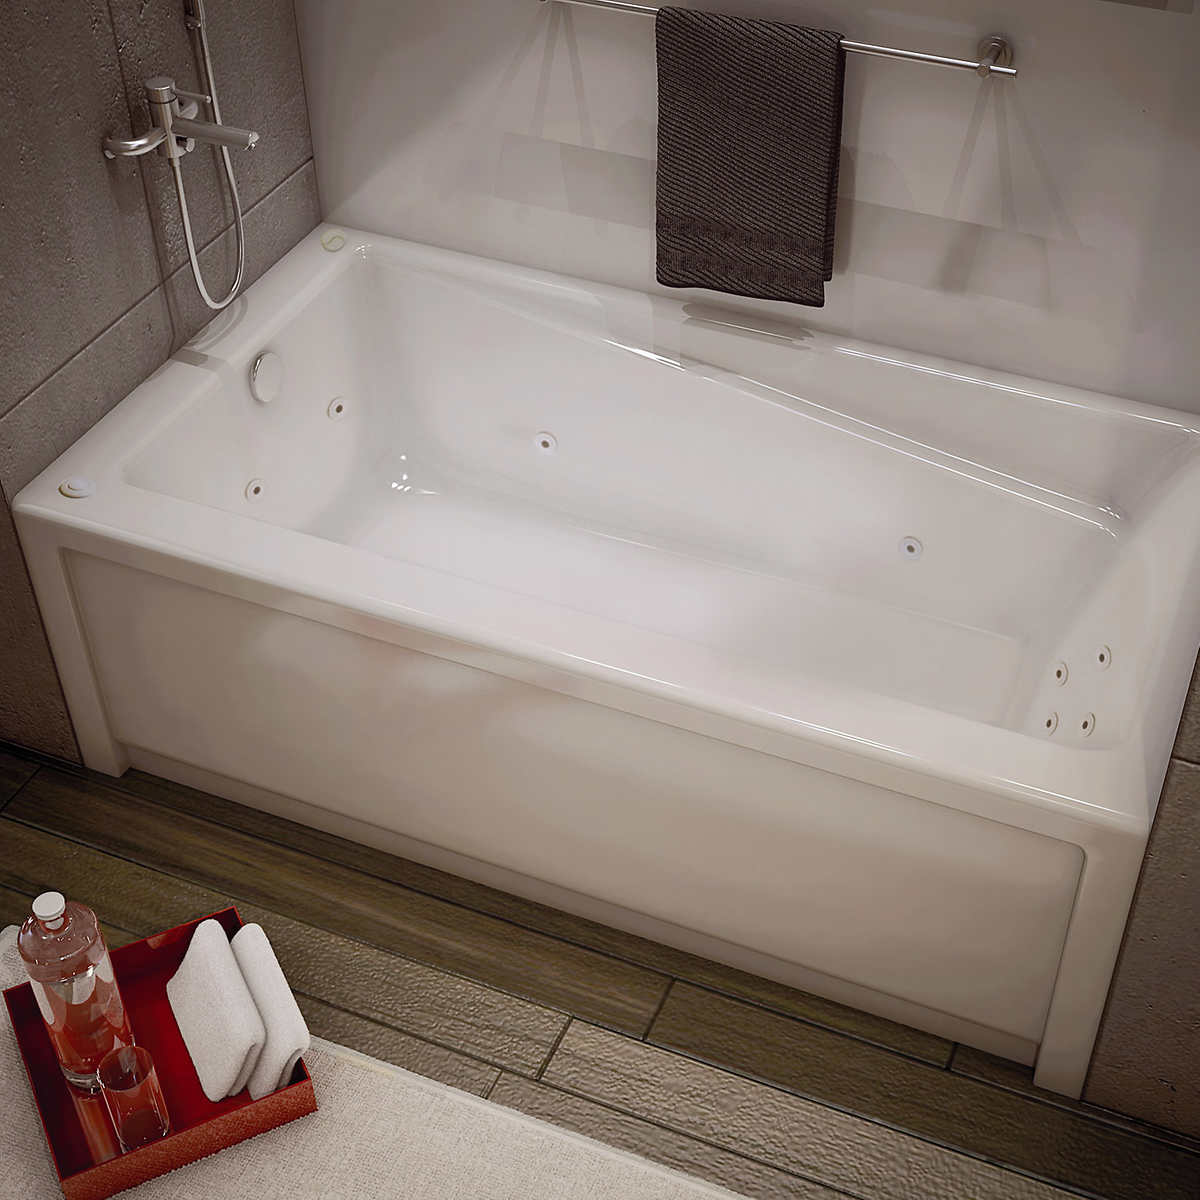 Magnificent Maax Jacuzzi Tub Image - Bathroom and Shower Ideas ...